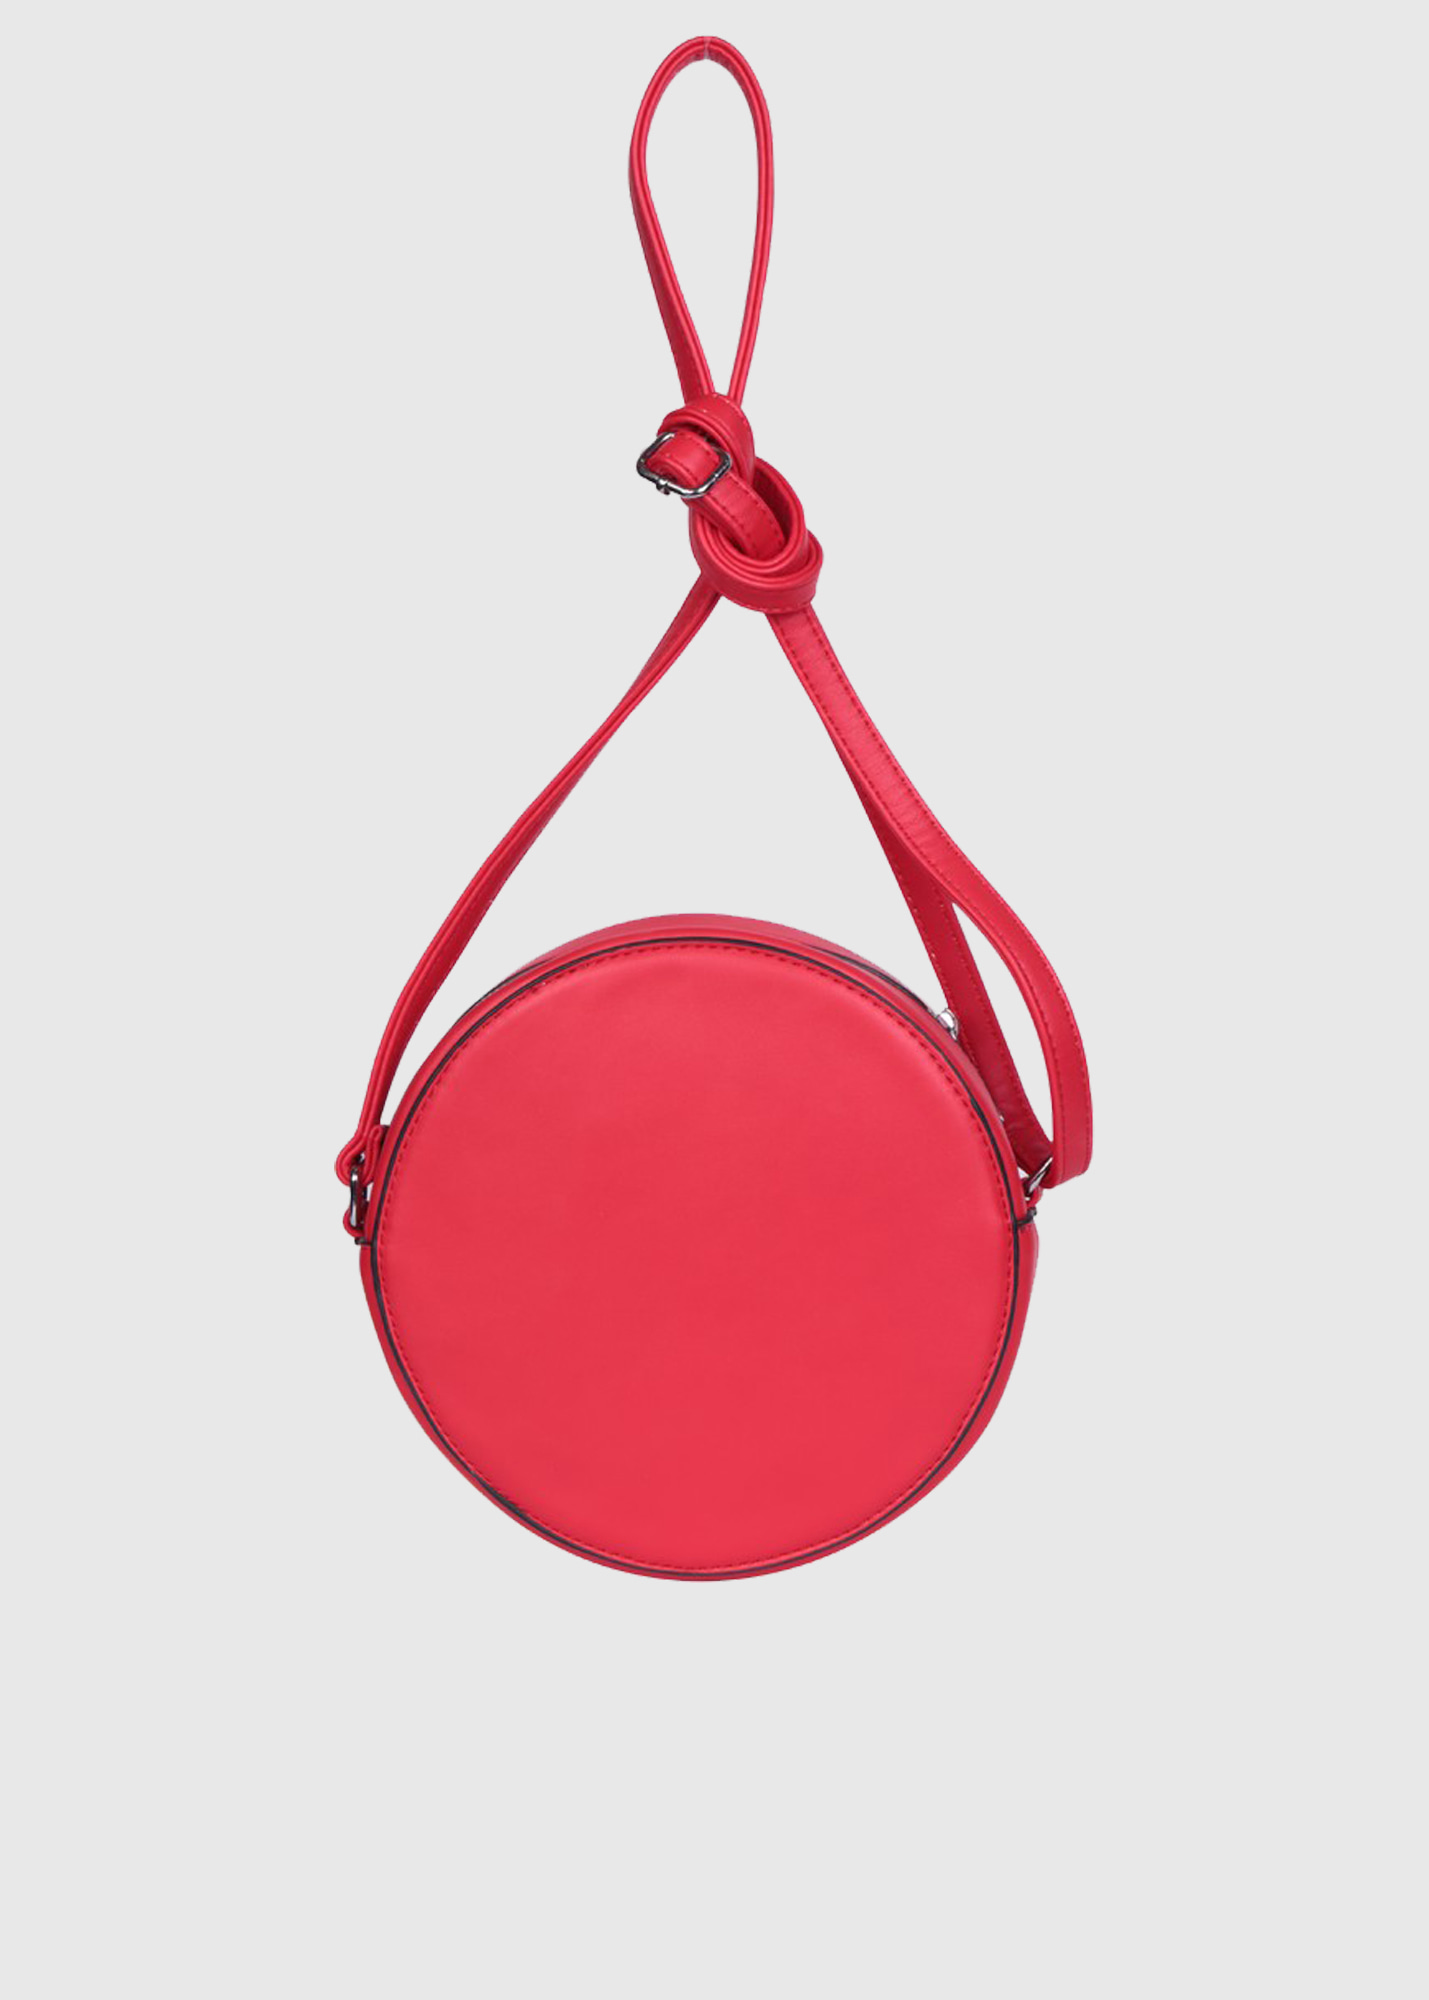 Photo №1 Carana women's round red bag